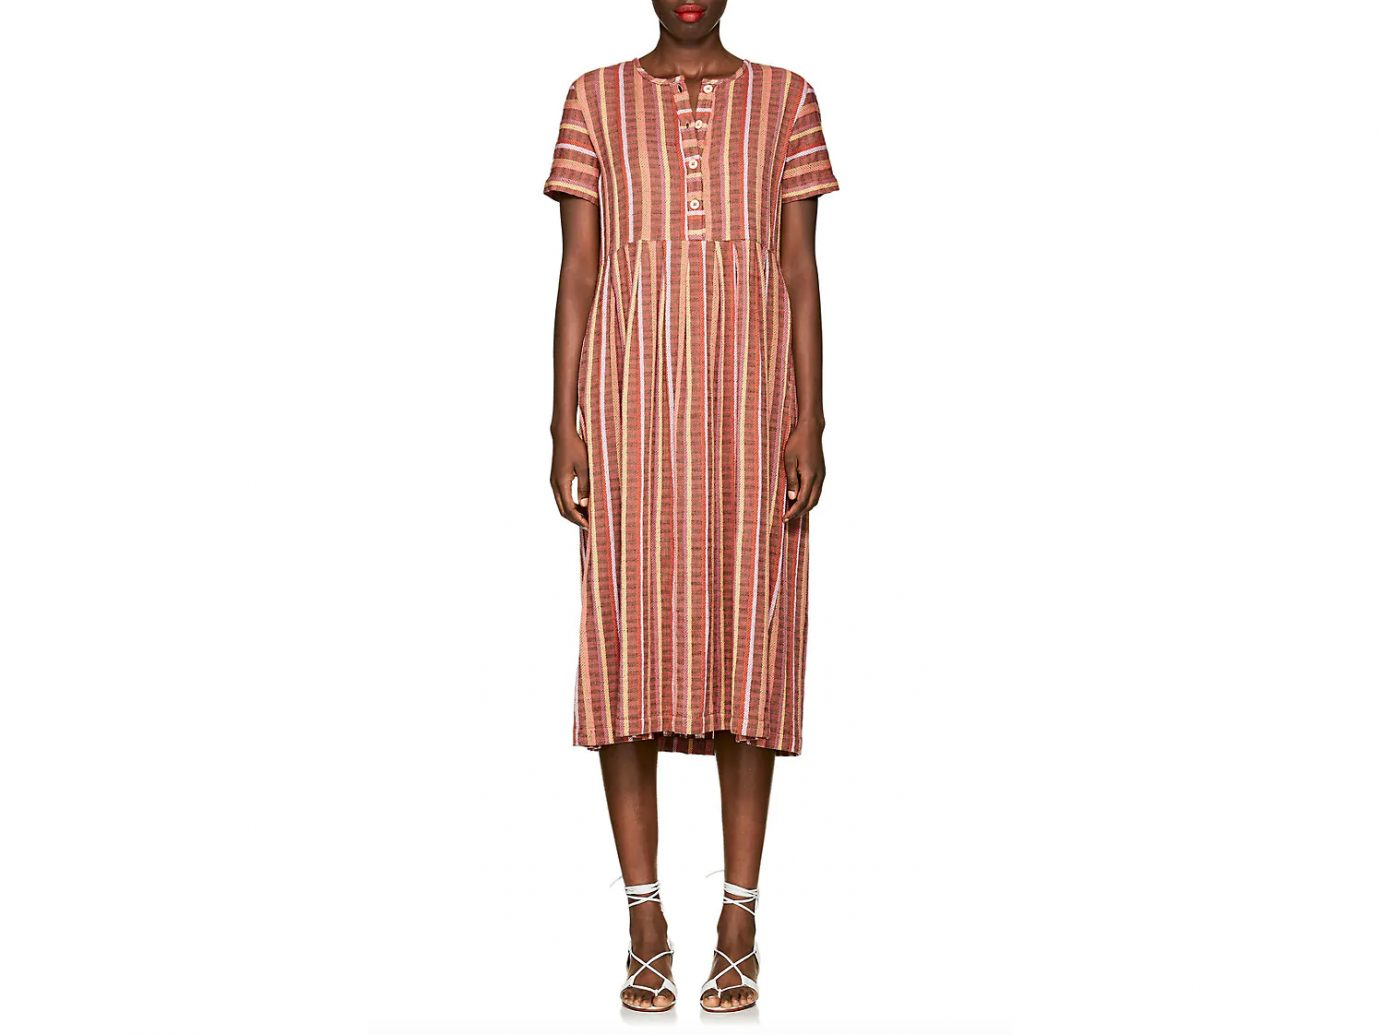 Ave & Jig Ashcroft Mixed-Stripe Cotton Dress